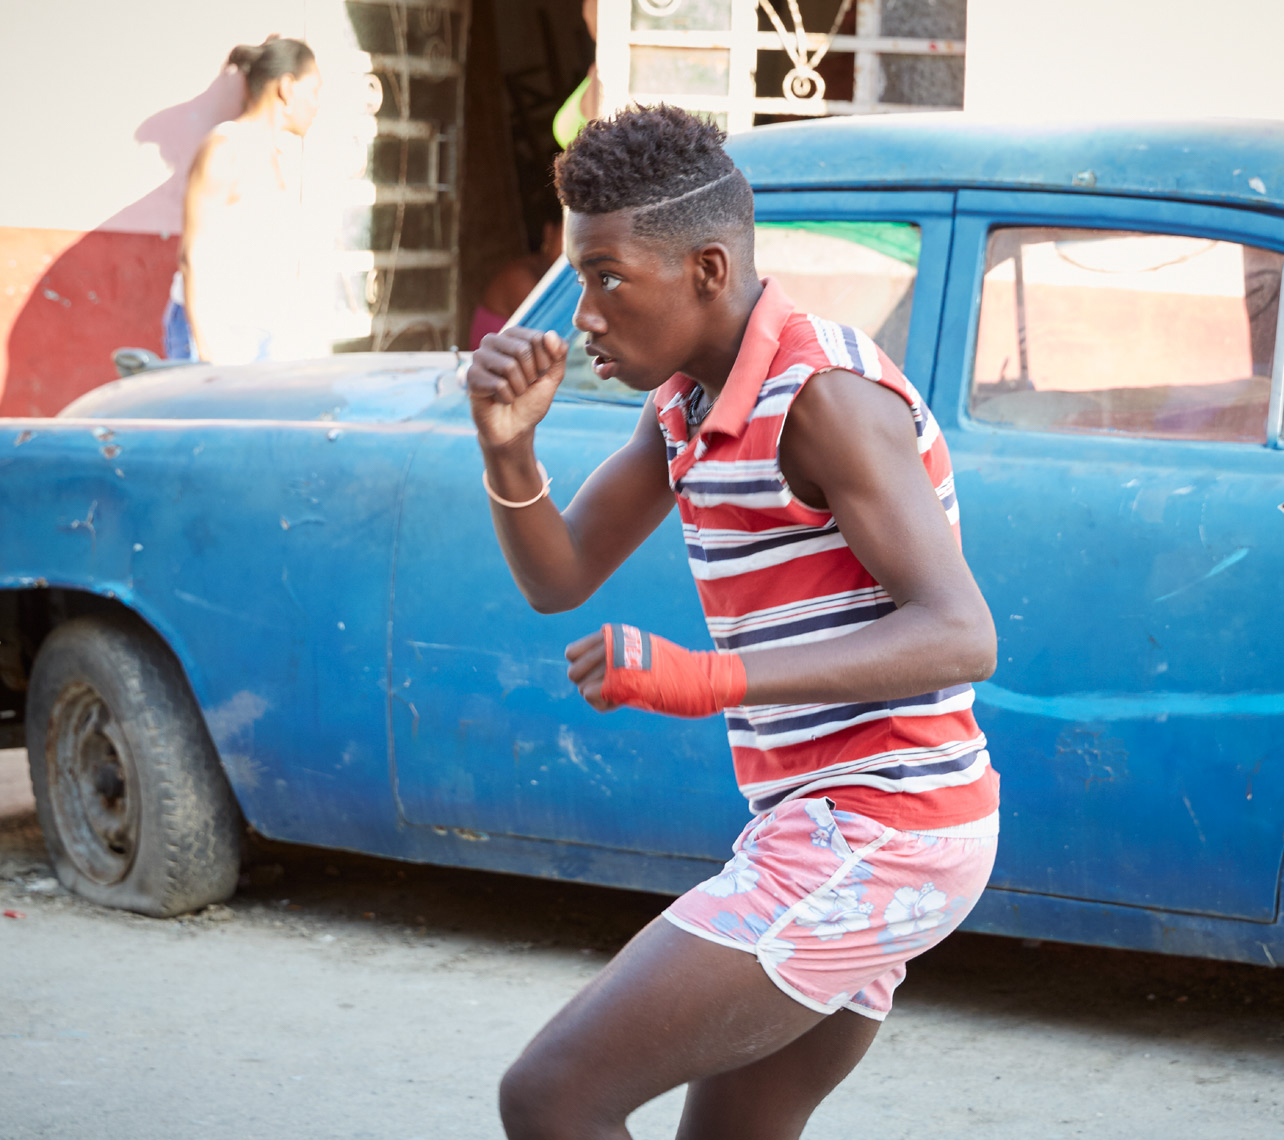 young boy practicing boxing in front of old blue car in Cuba